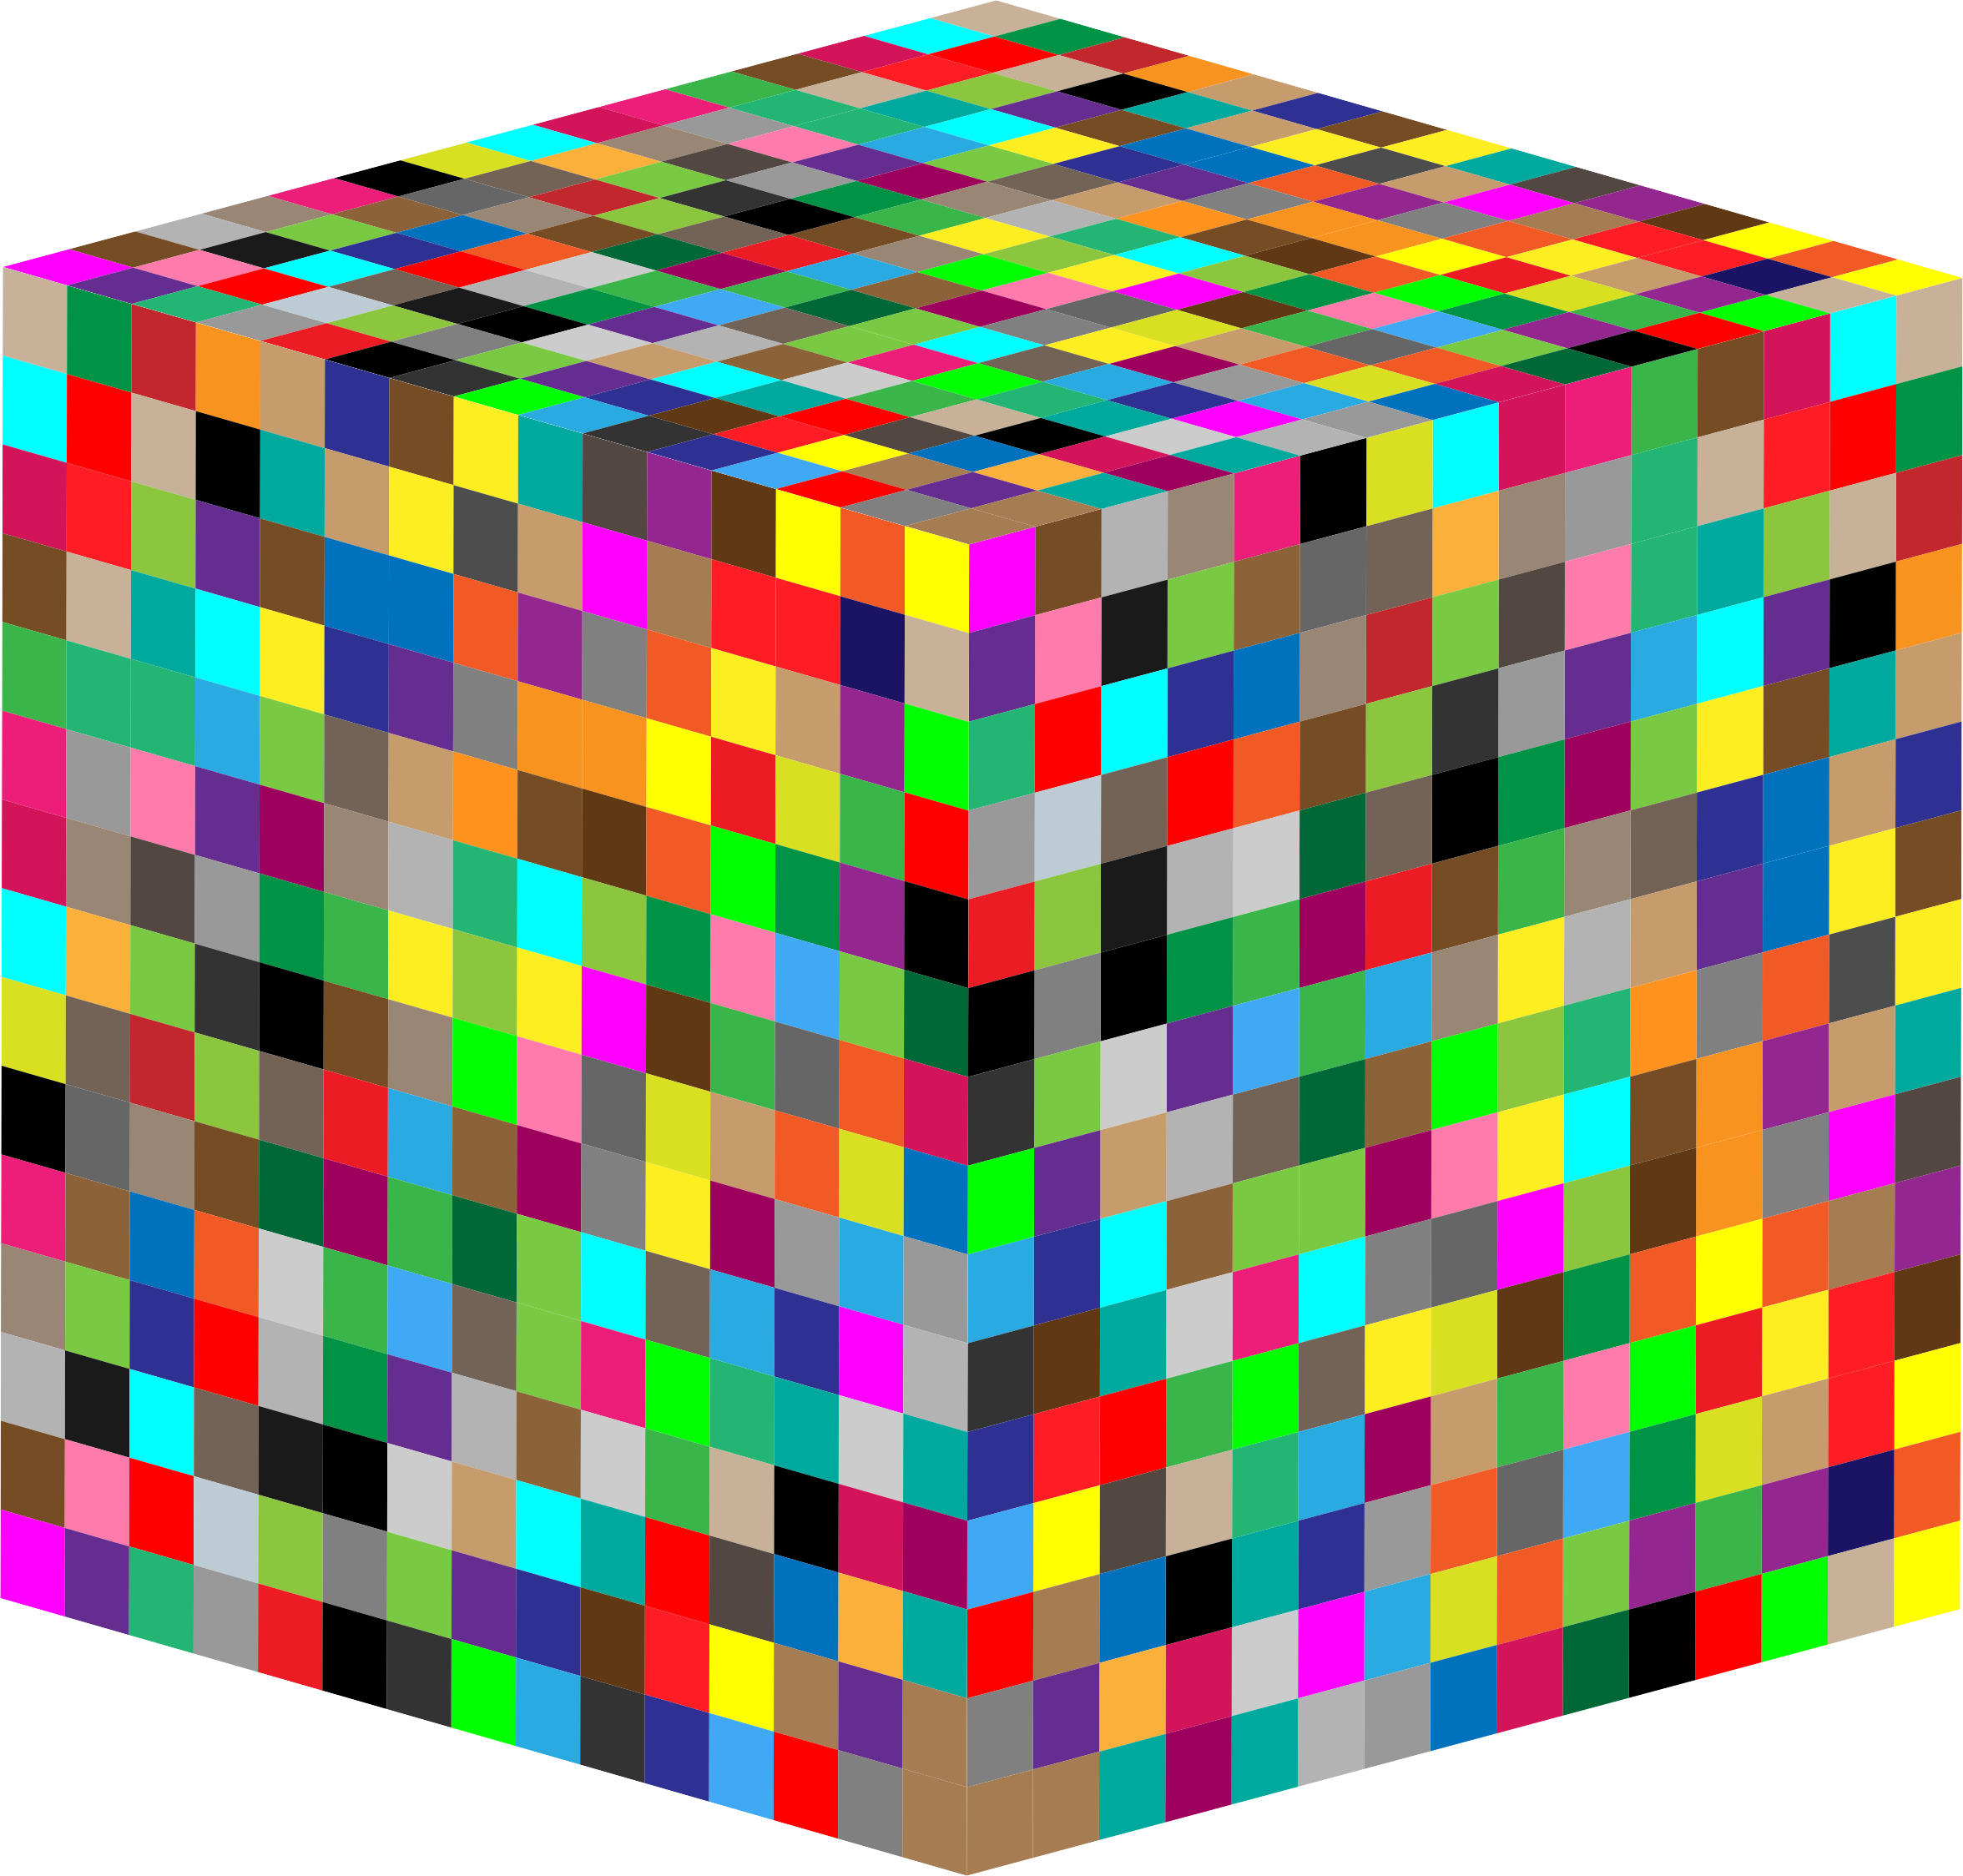 3D Multicolored Cube by GDJ